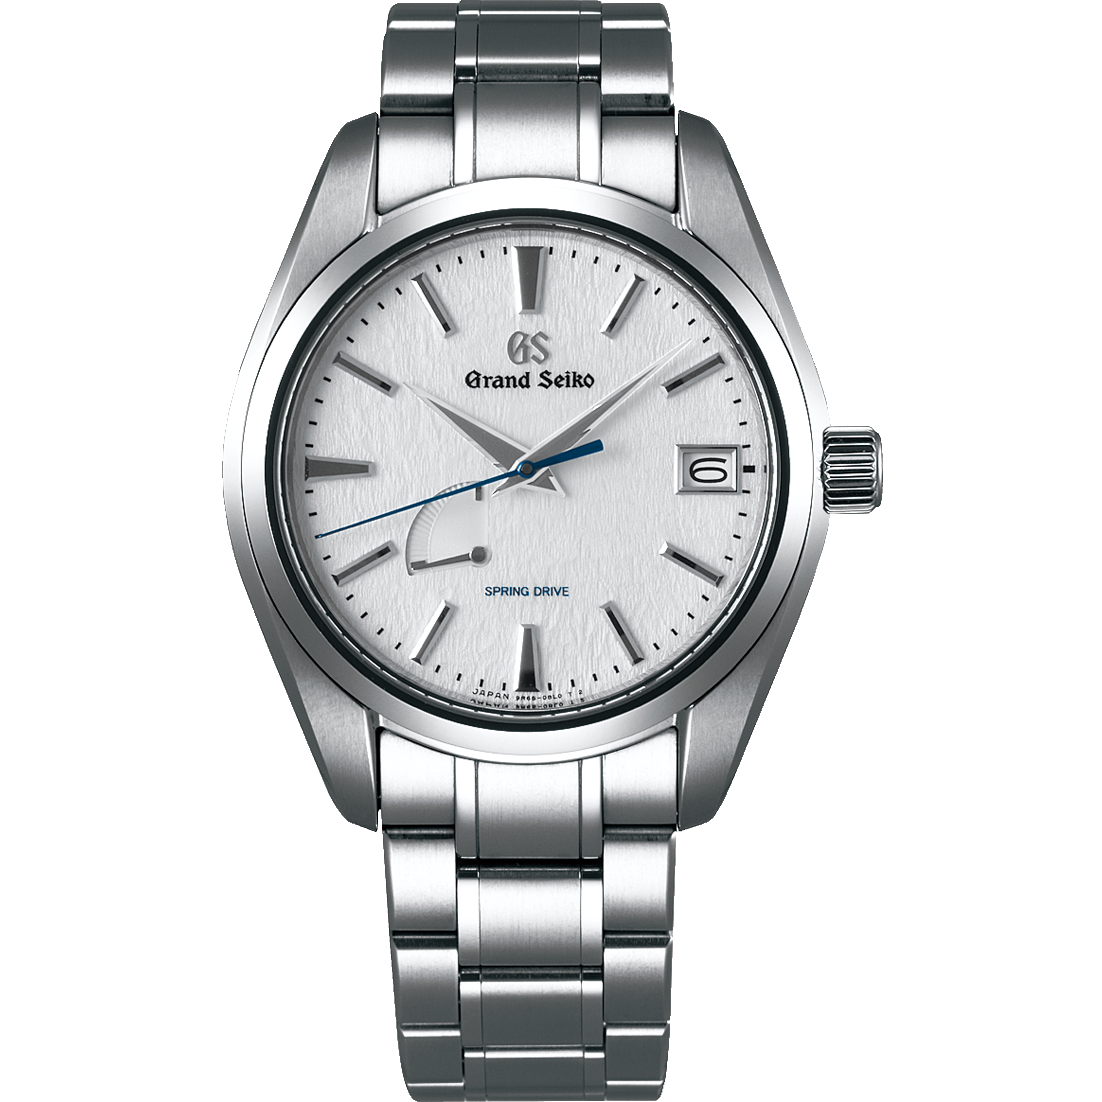 Grand Seiko Automatic Spring Drive 3-Day Watch